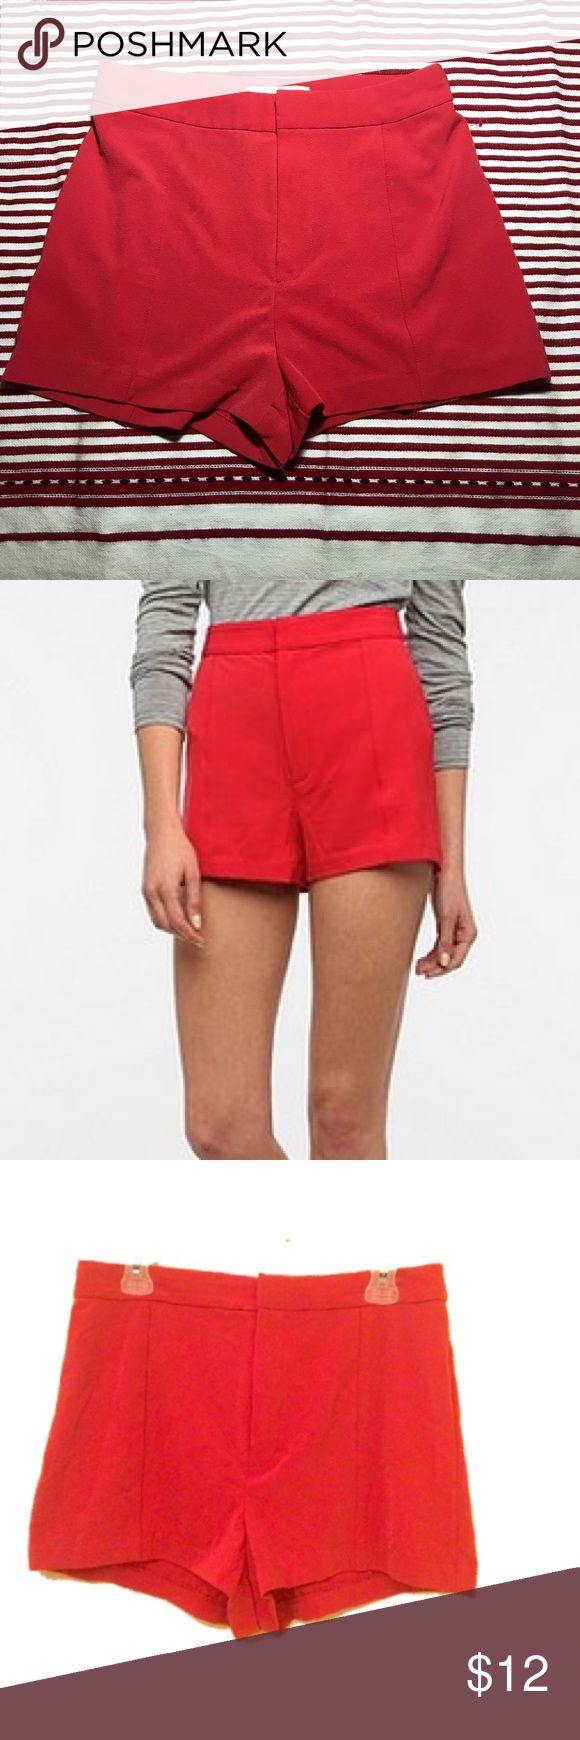 Urban Outfitters COOPERATIVE High Waisted Shorts Super cute red high waisted shorts by COOPERATIVE and sold at Urban Outfitters. These are in good condition, barely washed or worn. They do have a minor flaw. There is a little black pen mark or smudge on the butt. You can't tell when you're wearing them, and you might be able to get it out. Priced to sell! Cooperative Shorts